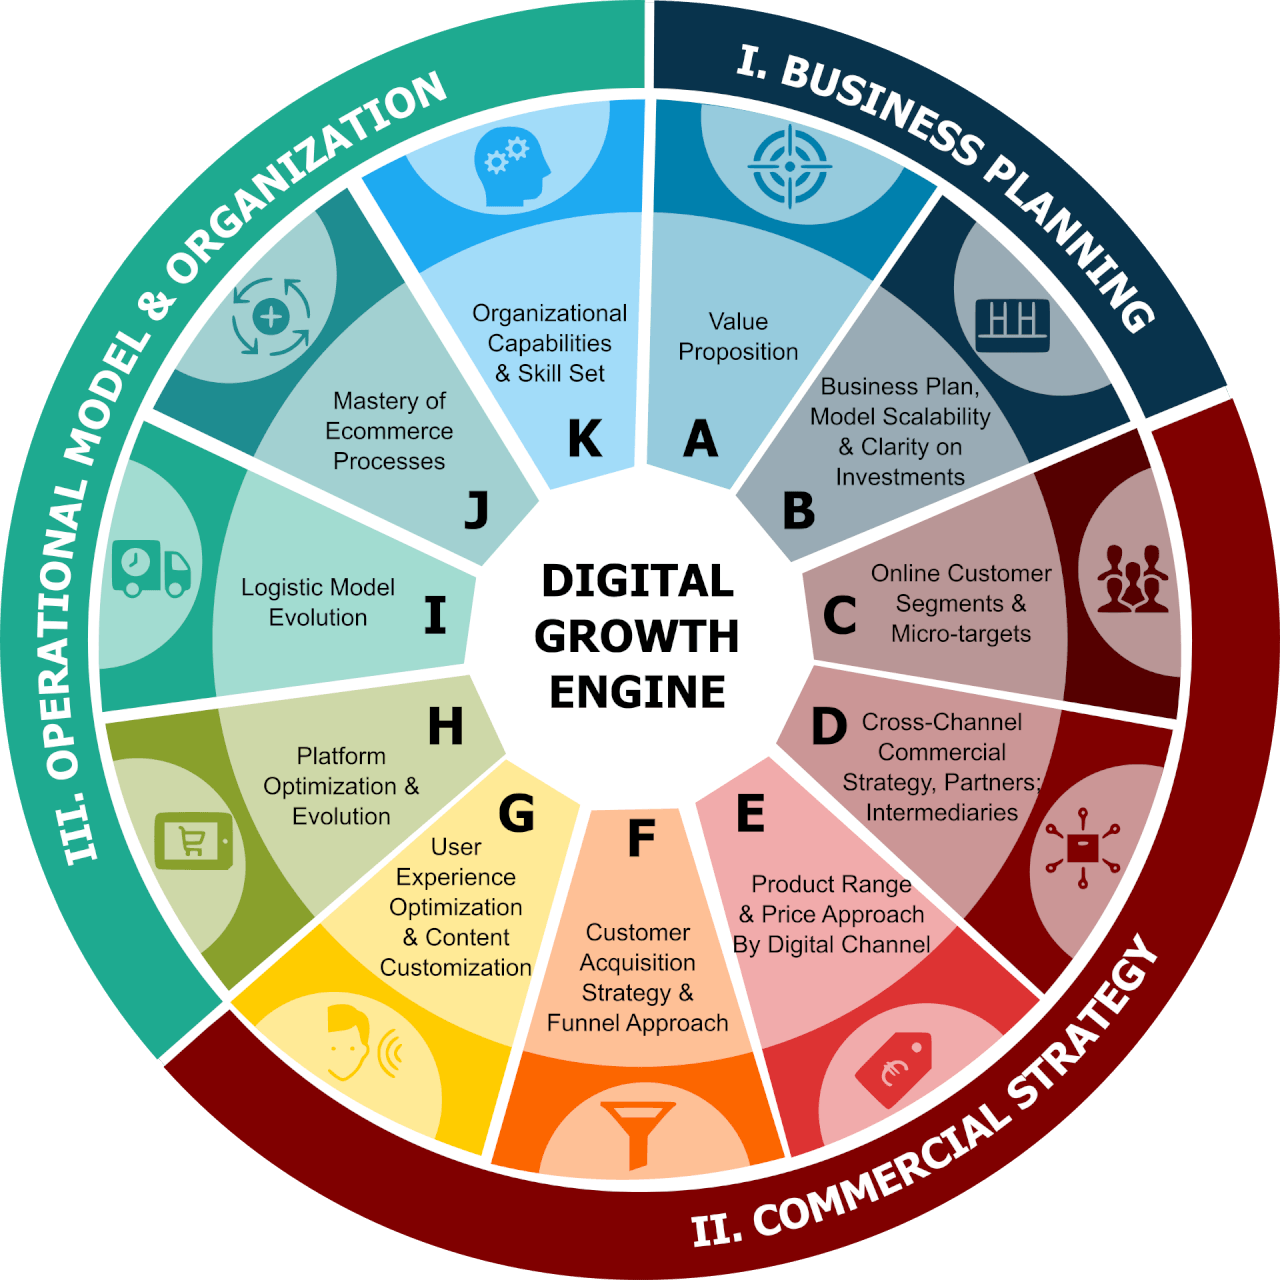 CREATING A DIGITAL GROWTH ENGINE – DIAGNOSTIC TOOL